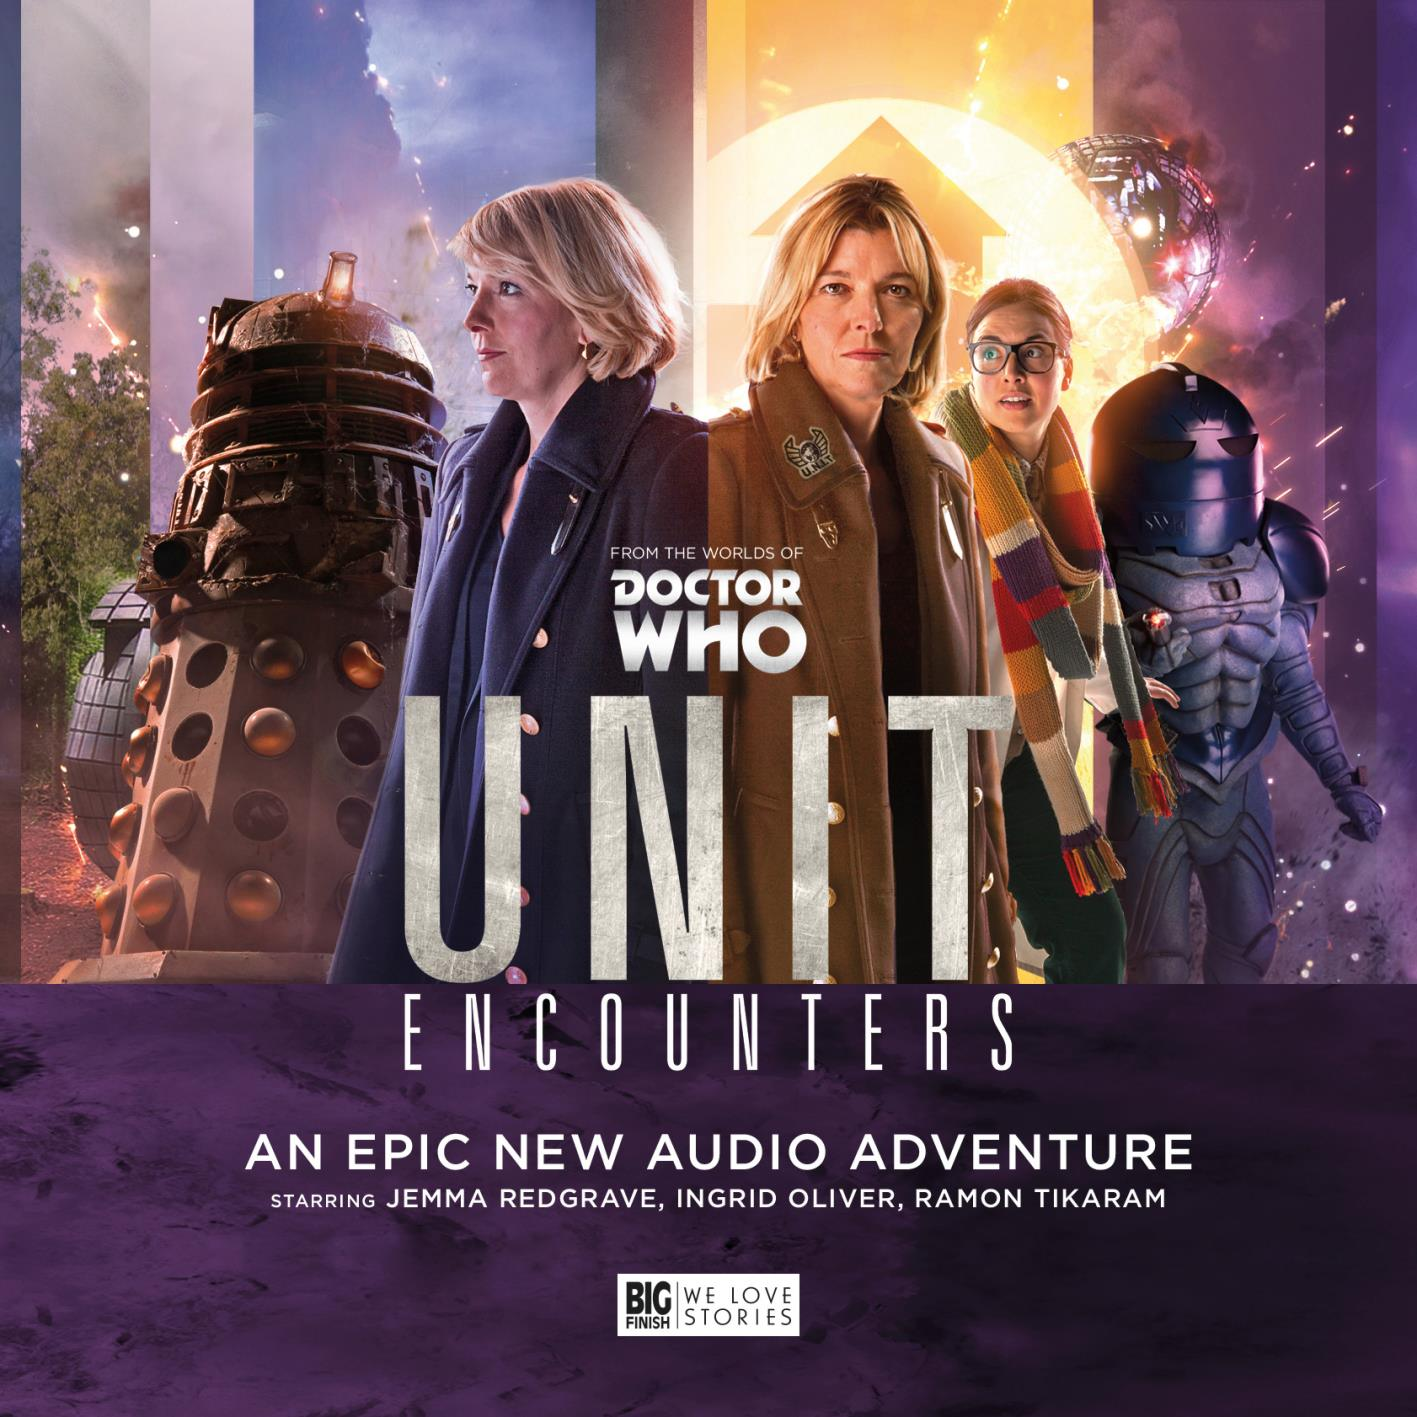 Who-Natic: Audio - UNIT Encounters - Cover Art and New Details